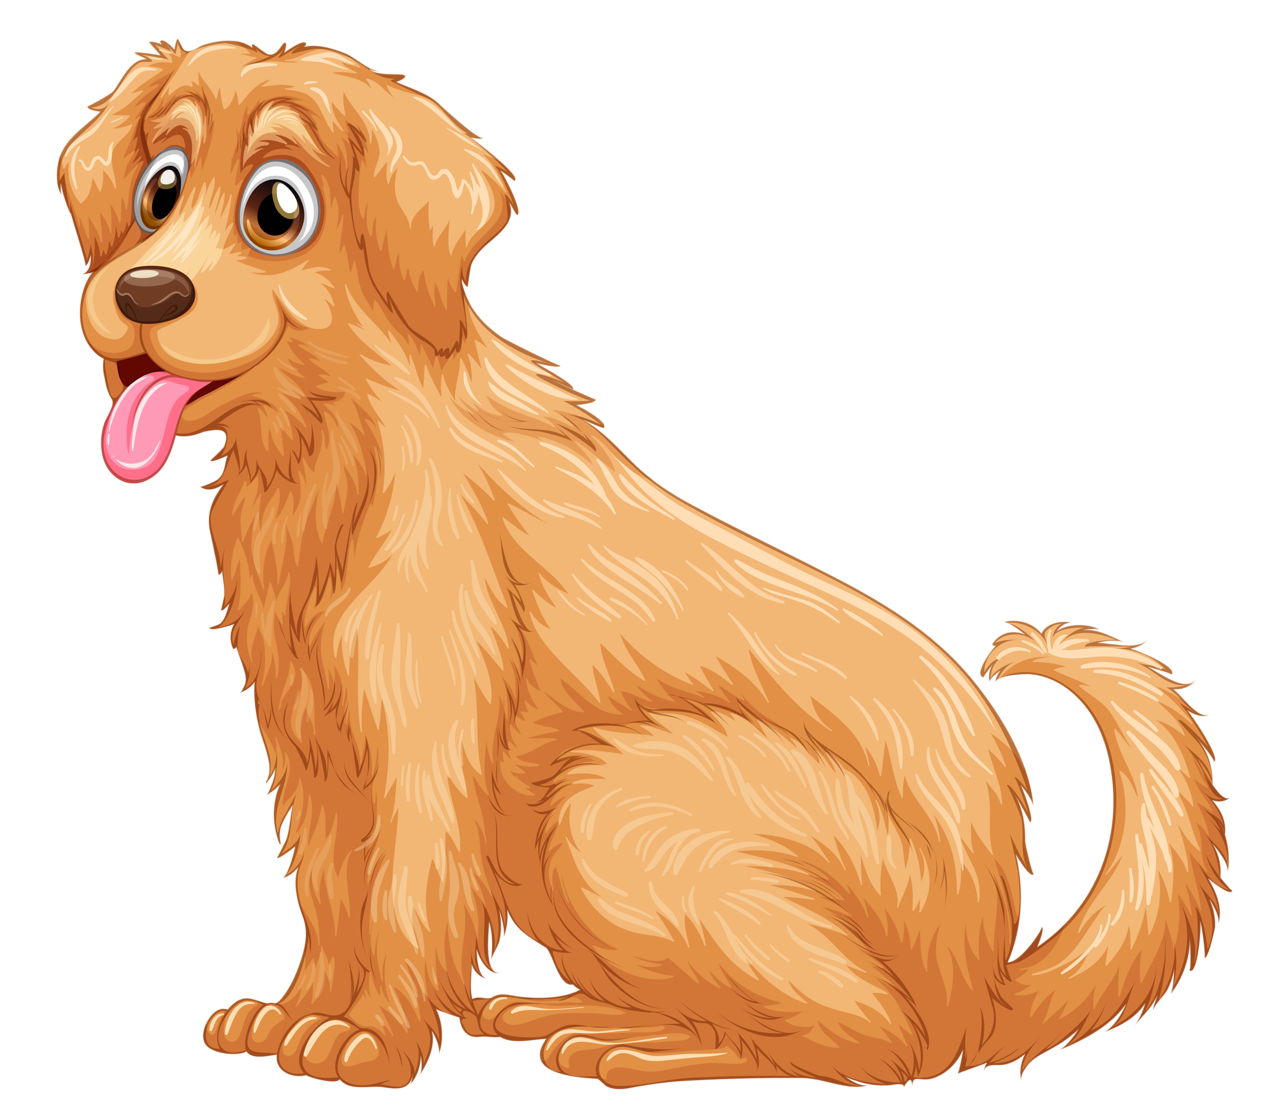 Golden retriever clipart orange dog. Png dogs cats